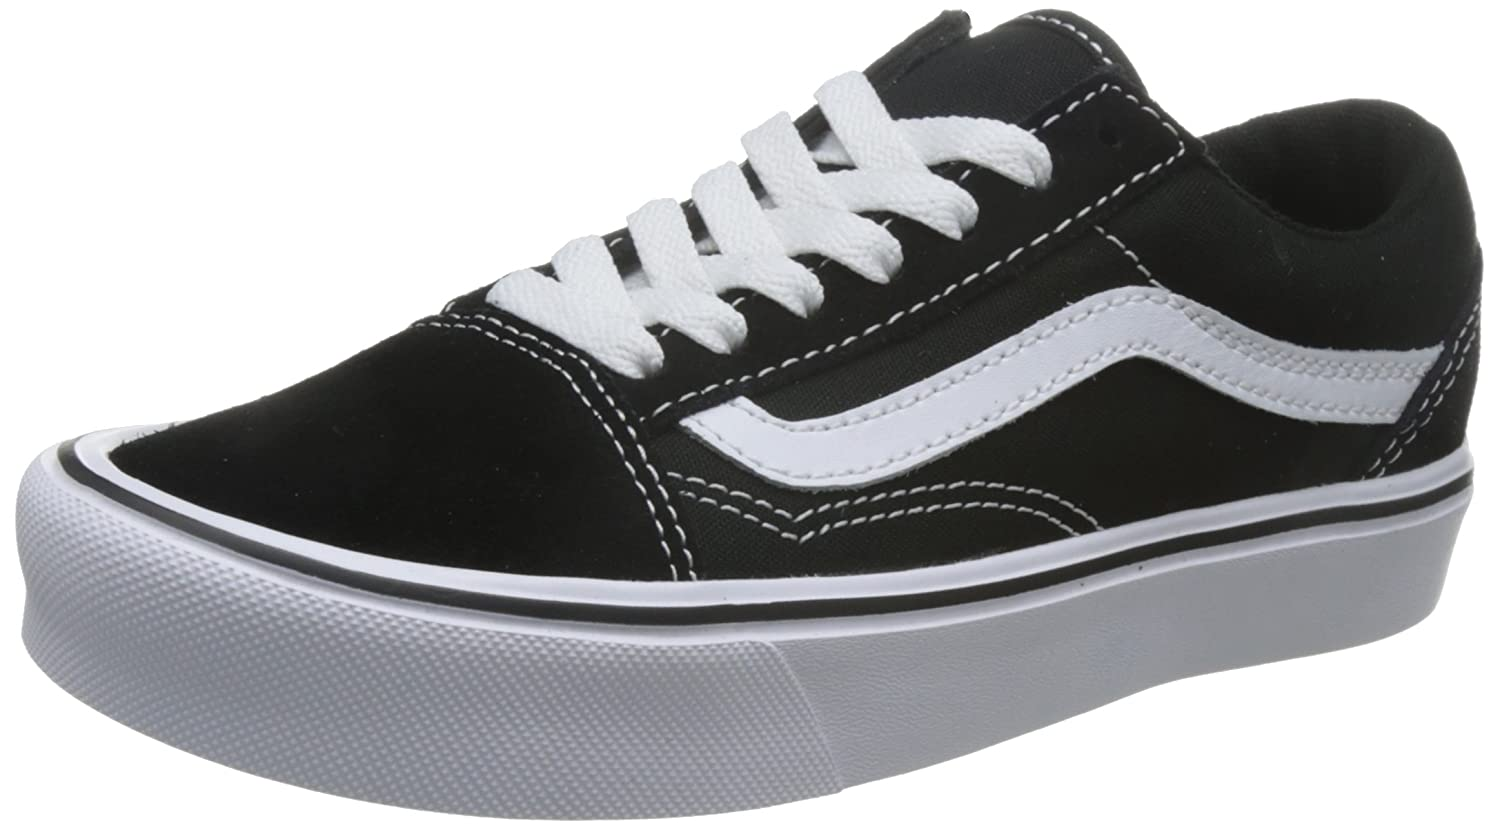 TALLA 36 EU. Vans Old Skool Lite, Zapatillas Unisex Adulto